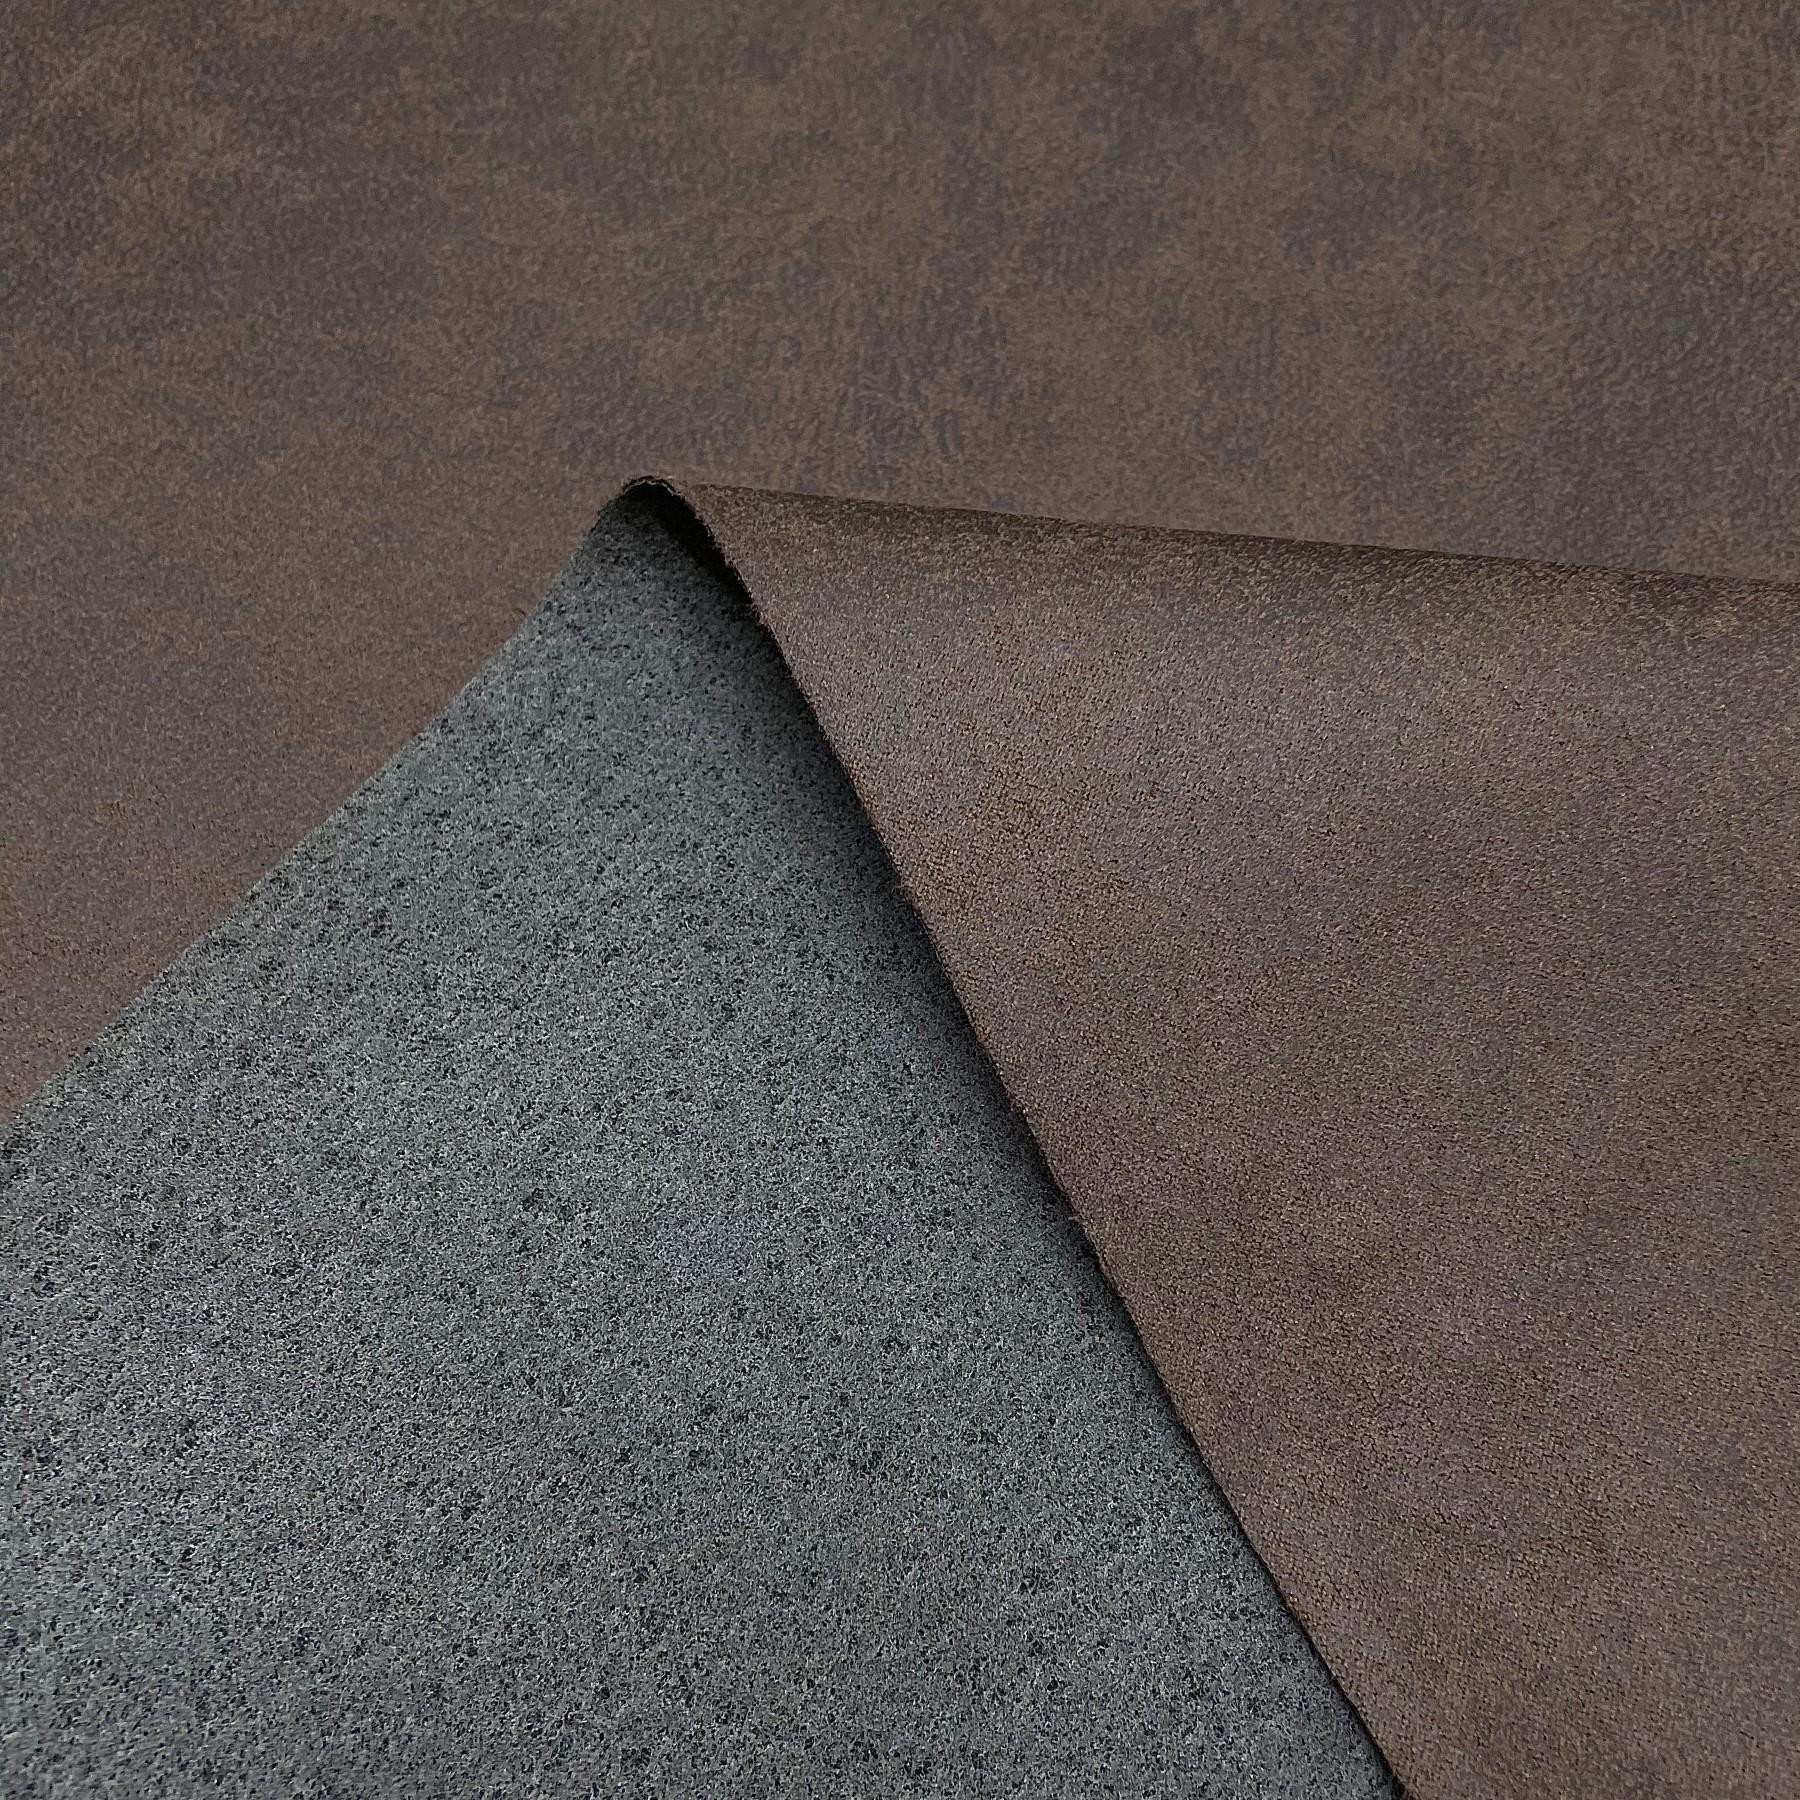 thumbnail 27 - AGED BROWN DISTRESSED ANTIQUED SUEDE FAUX LEATHER LEATHERETTE UPHOLSTERY FABRIC